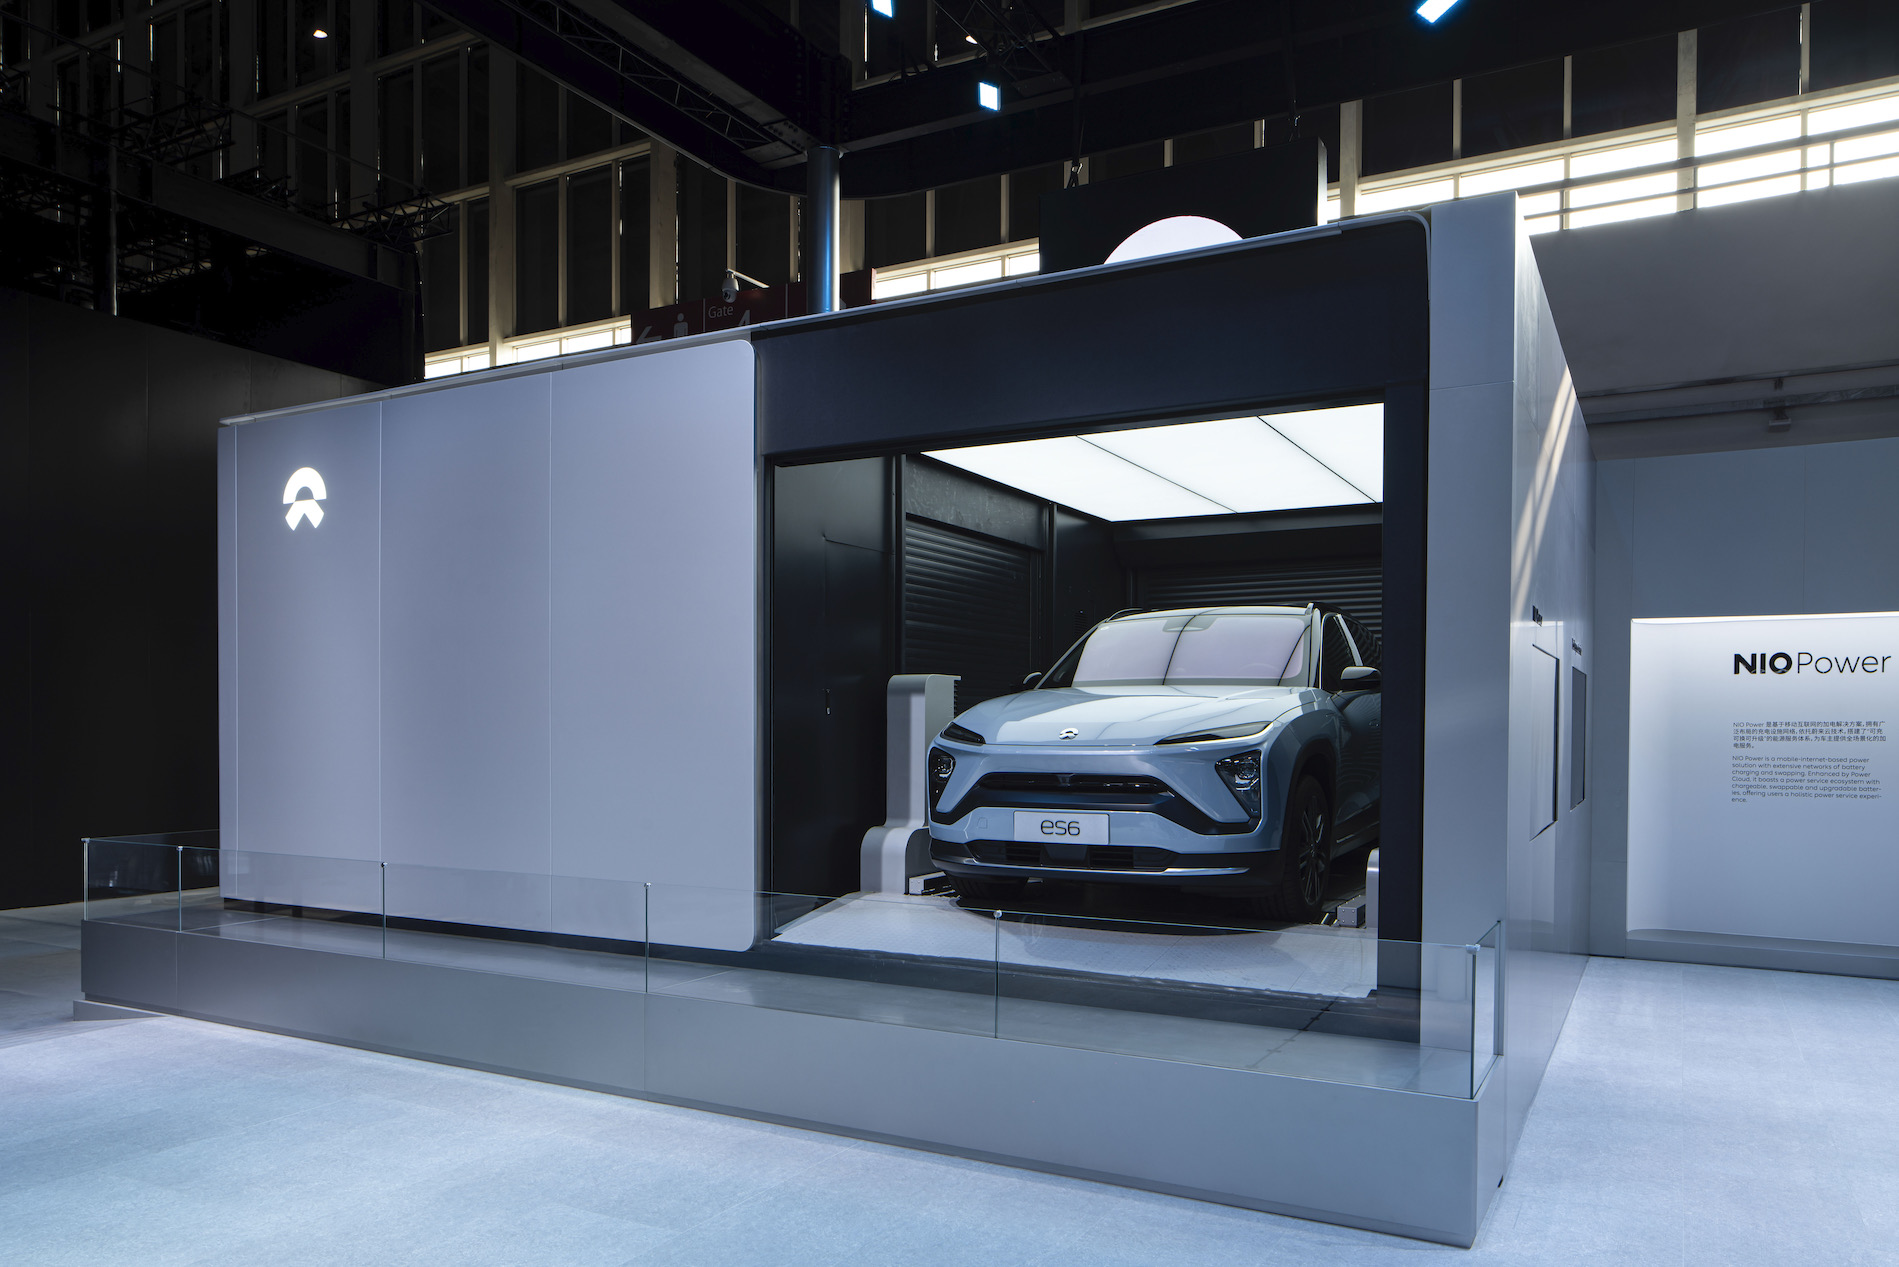 NIO unveils new Power Up Plan with RMB 100 million subsidy for deployment of 30,000 chargers-CnTechPost